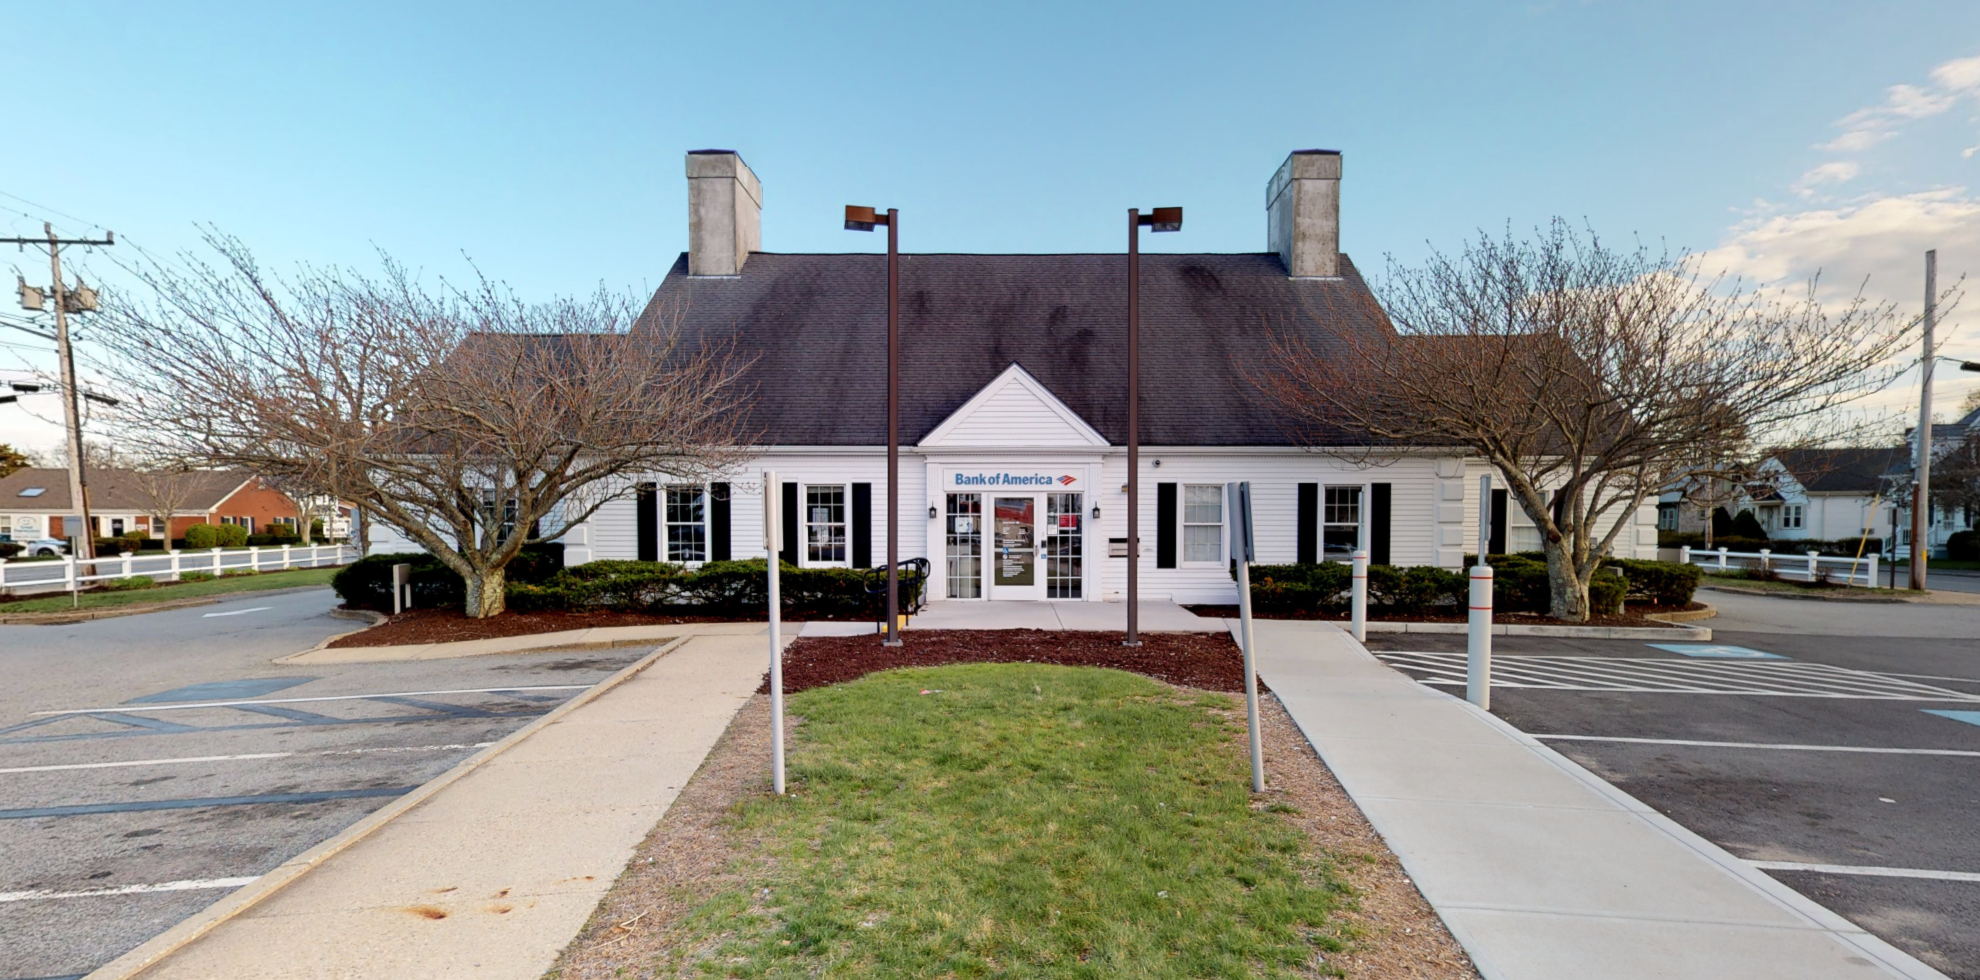 Bank of America financial center with drive-thru ATM and teller | 291 Barnstable Rd, Hyannis, MA 02601